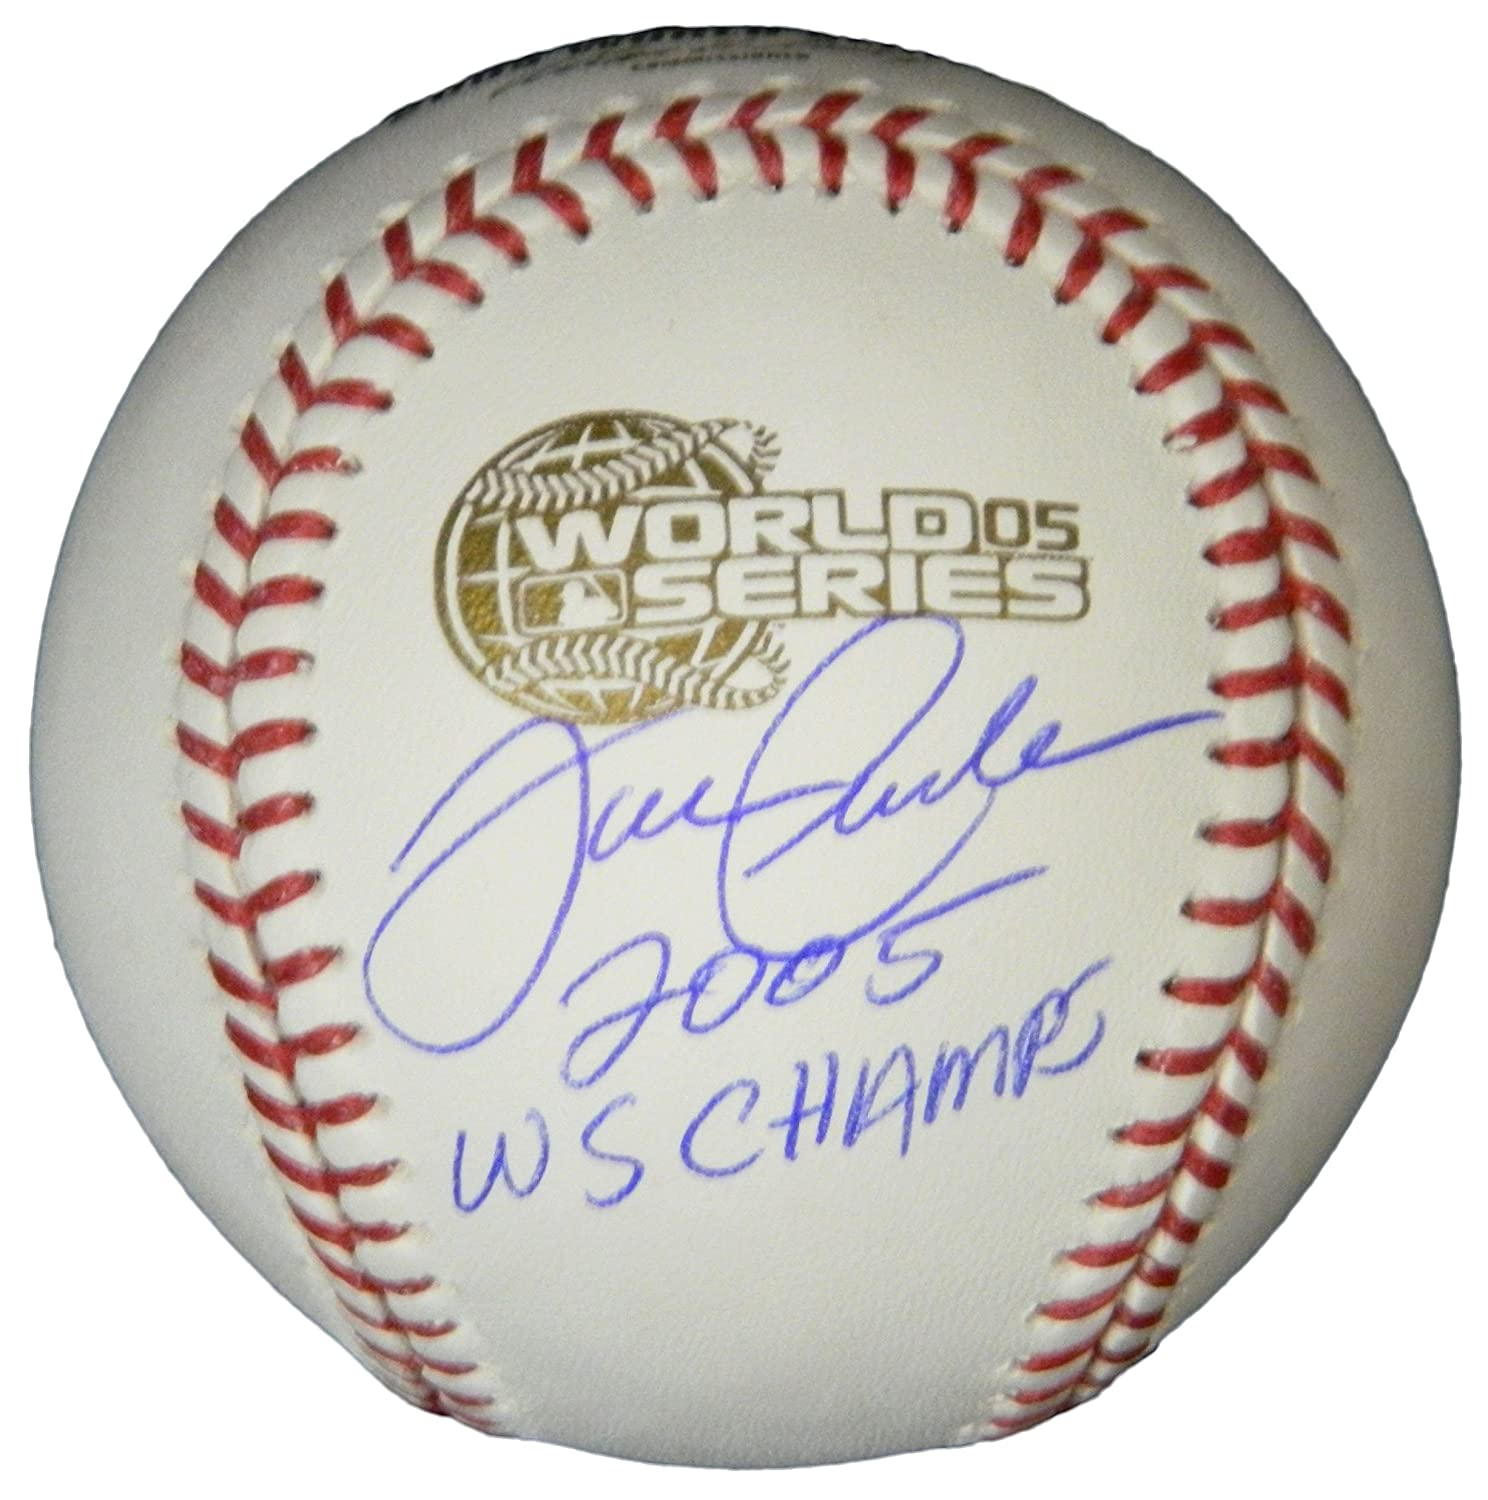 Joe Crede Signed Rawlings Official 2005 World Series Baseball w/2005 WS Champs